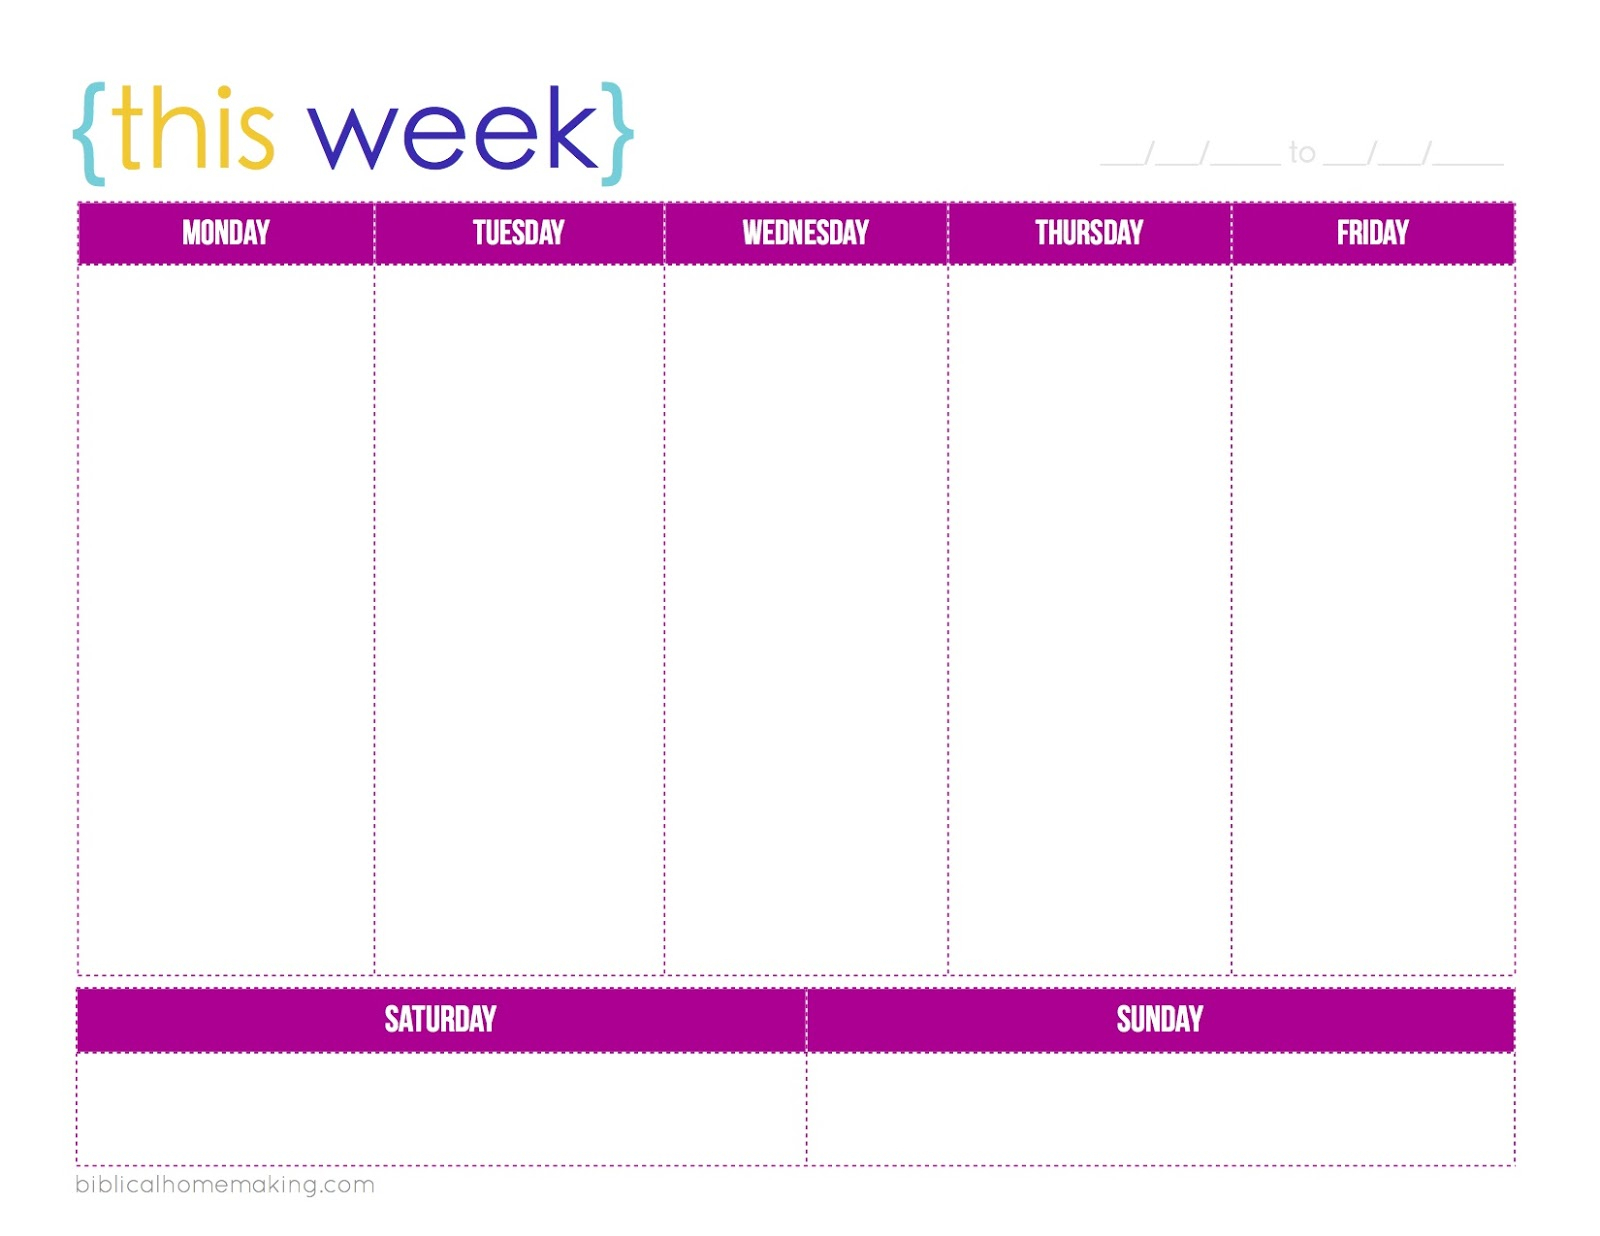 Blank Weekly Alendar Monday To Friday Through Template Word Free within Blank Printable Calendar M-F